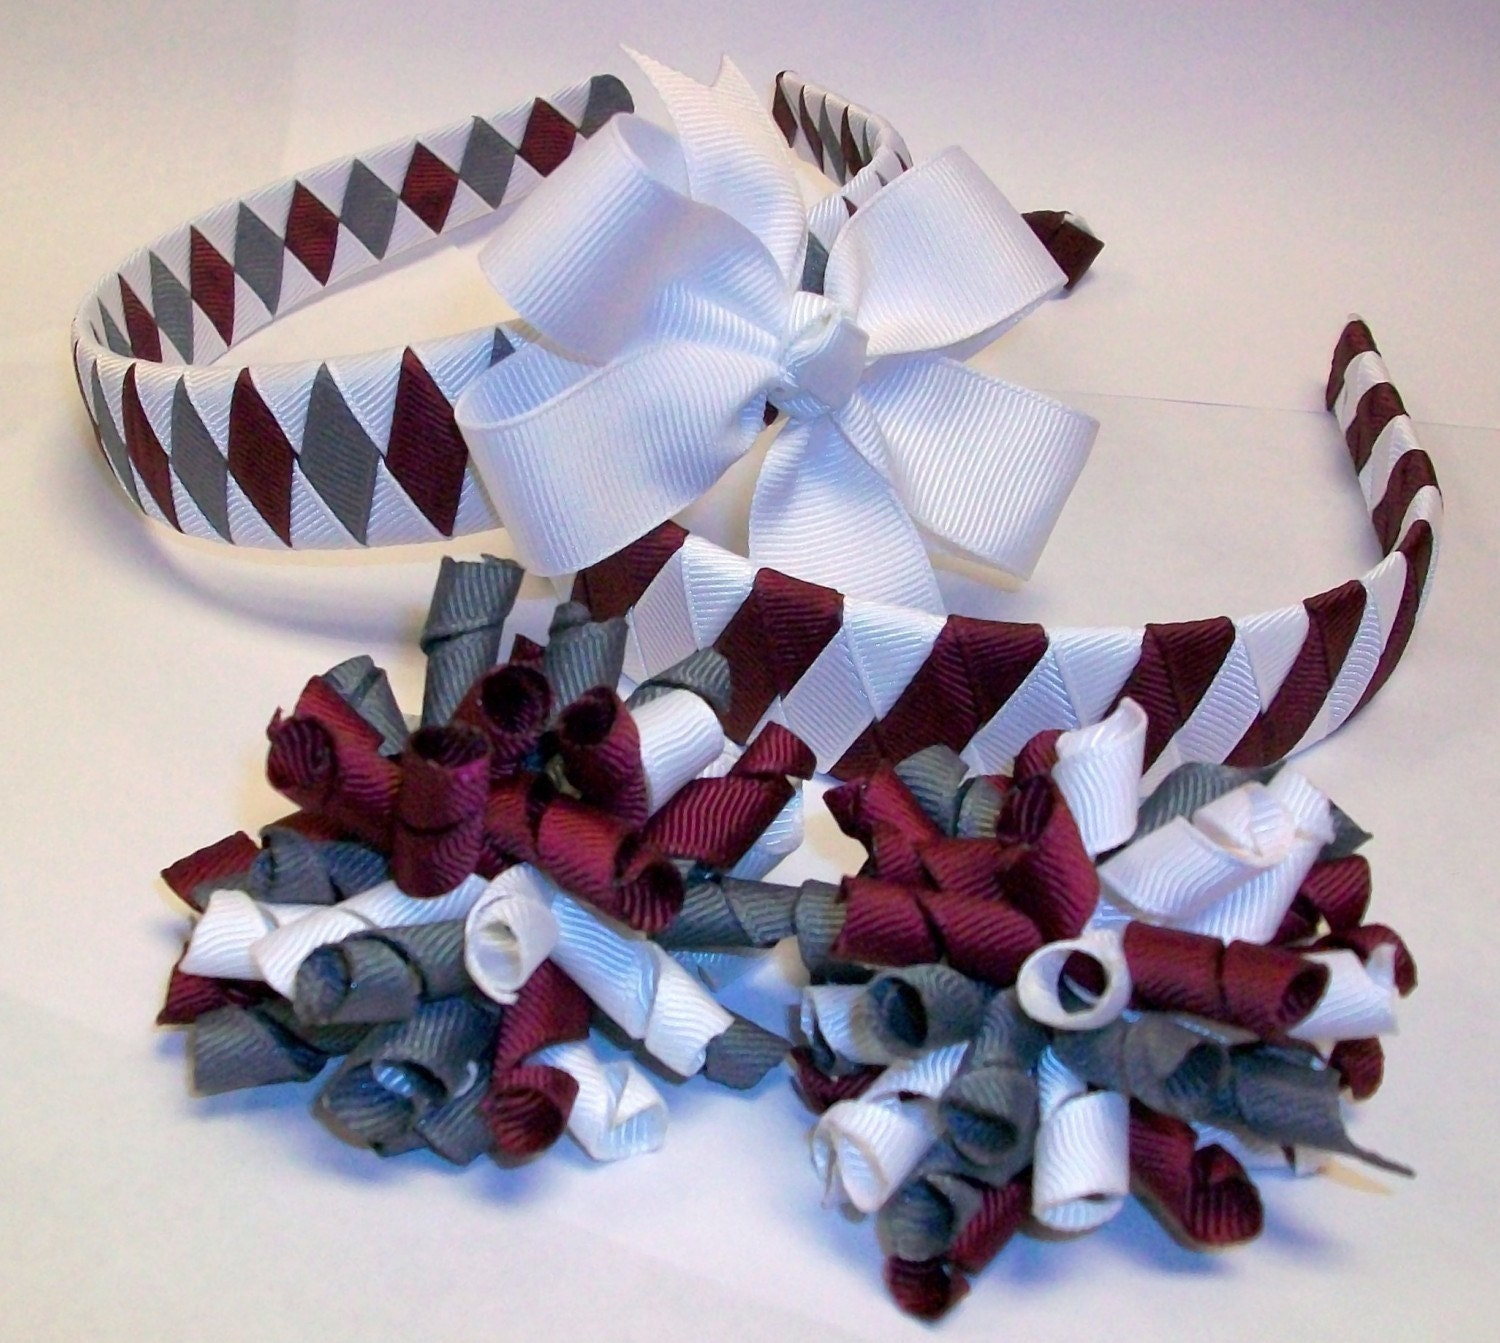 SCHOOL SPIRIT Hair Accessory Bundle-- 2 Headbands and 3 Bows--You choose up to 3 School colors or Uniform Colors